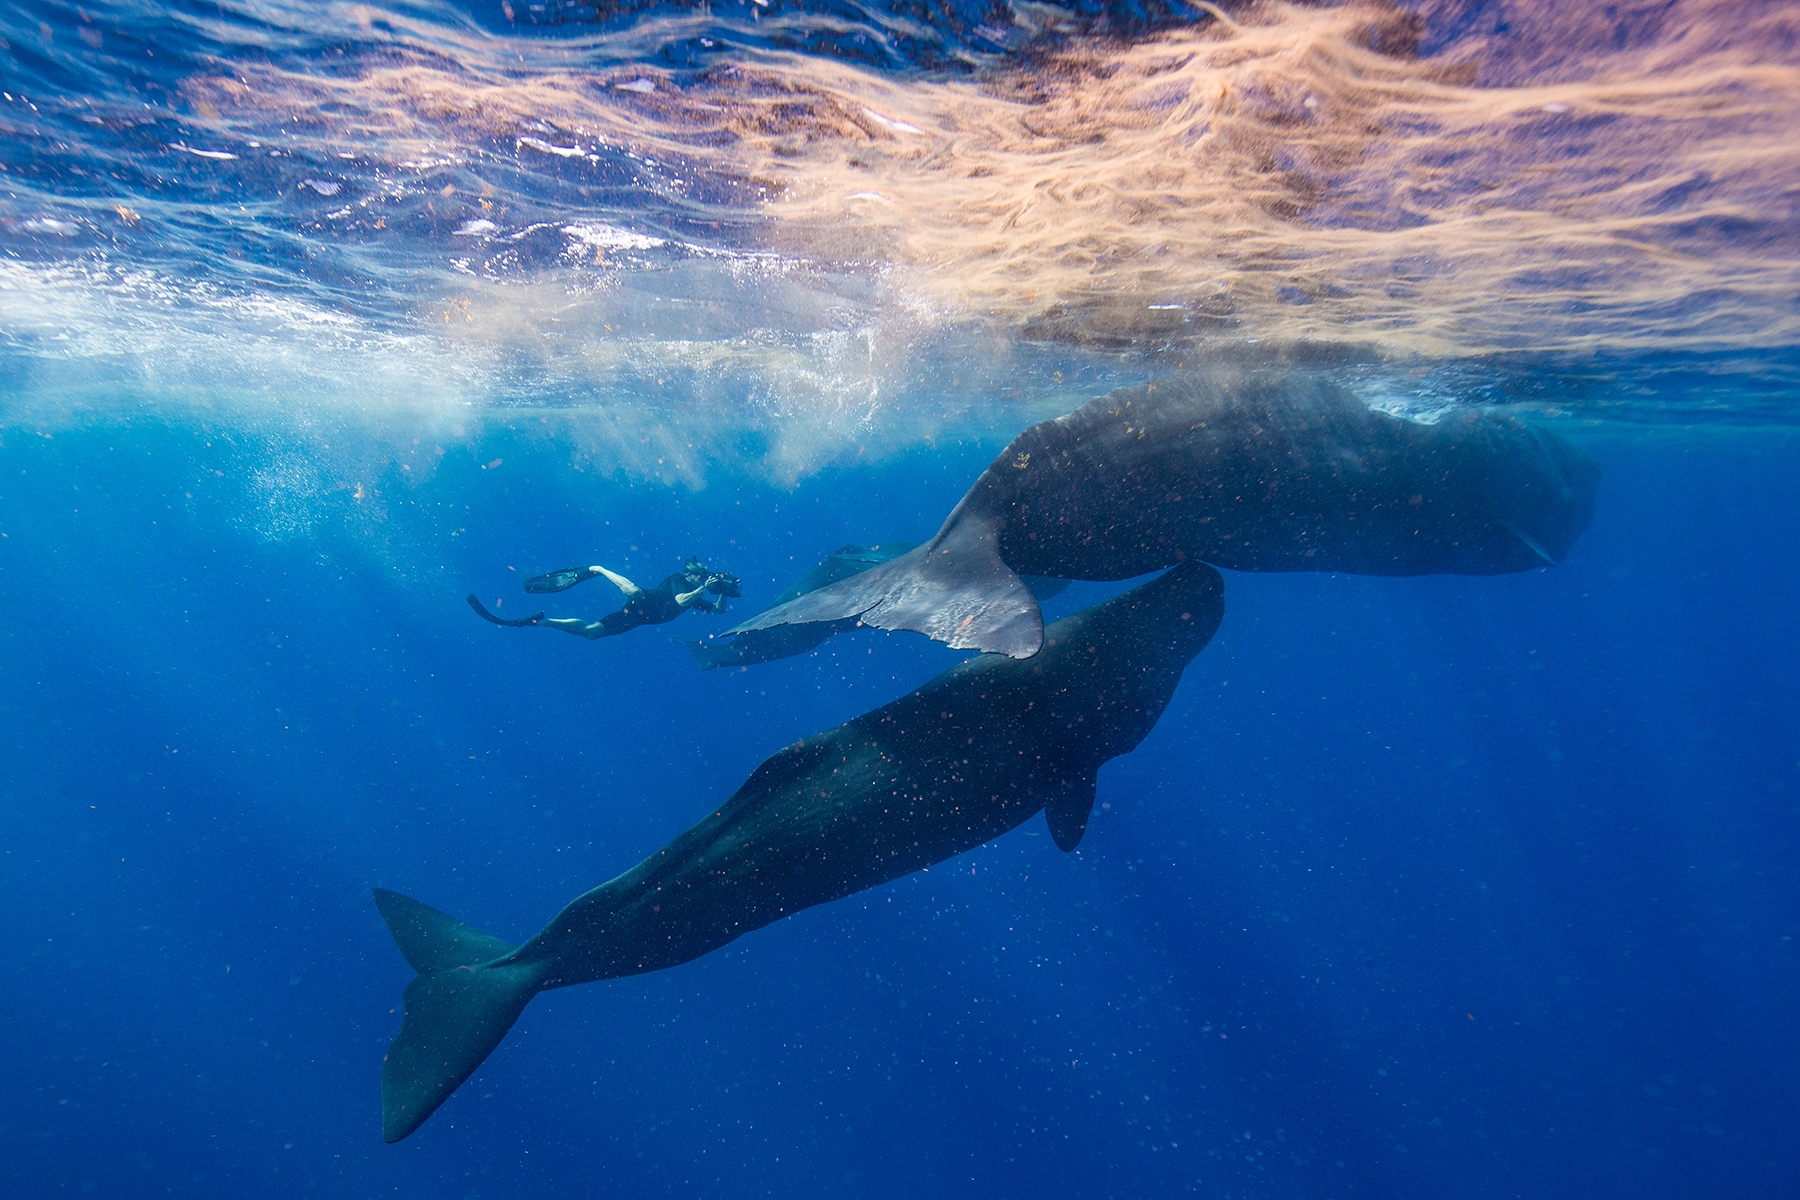 Secrets-of-the-Whales-Featured.jpg?mtime=20210519120240#asset:101376